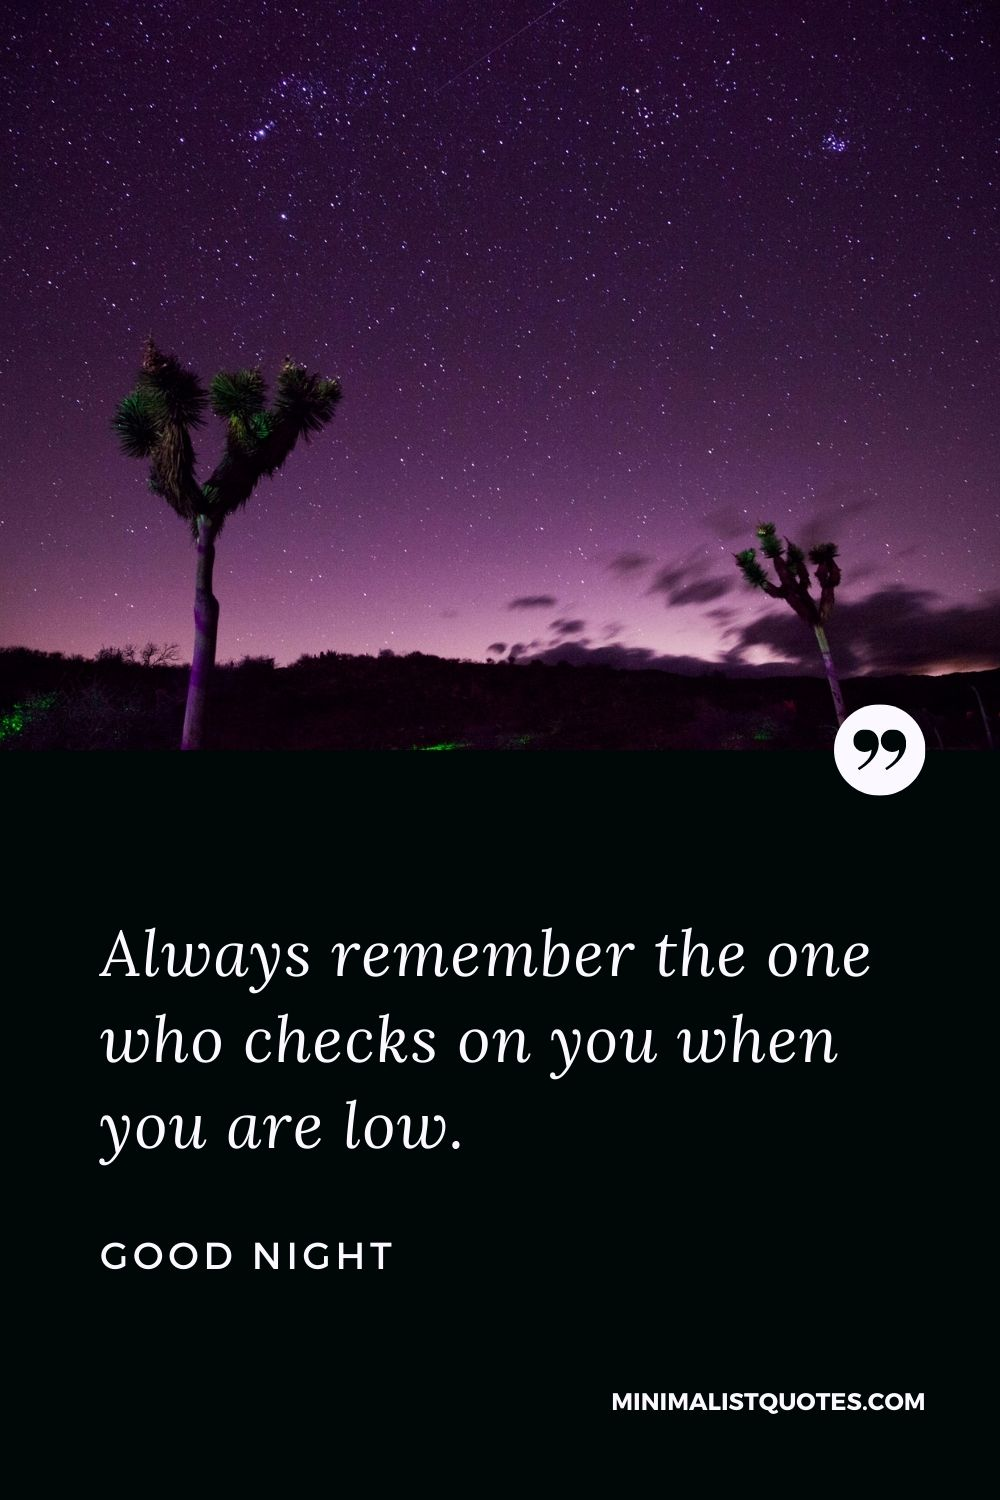 Good Night Wishes - Always remember the one who checks on you when you are low.